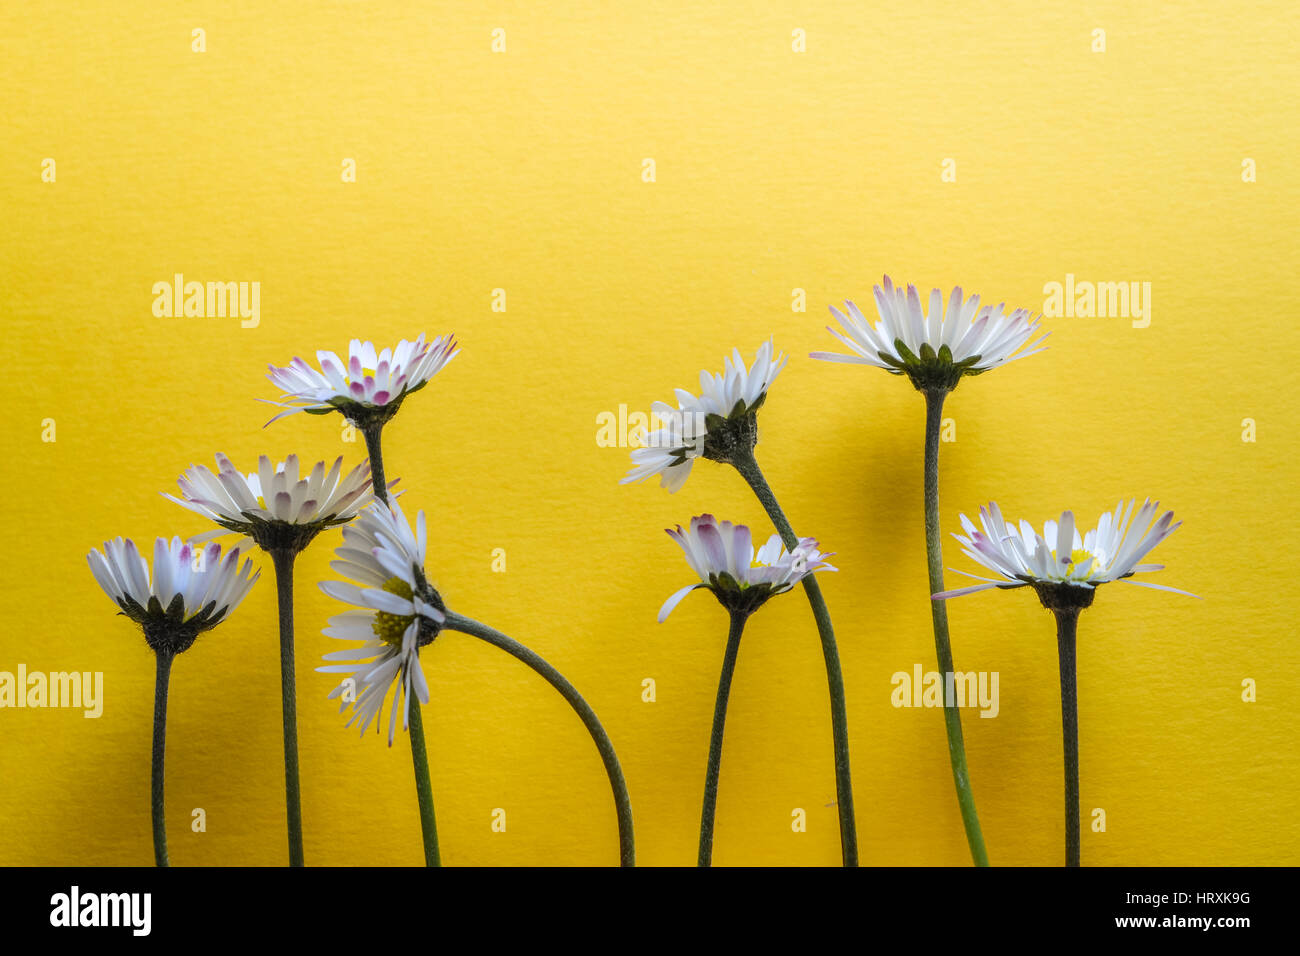 Group little daisy flowers on stock photos group little daisy group of little daisy flowers on bright yellow textured background closeup stock image izmirmasajfo